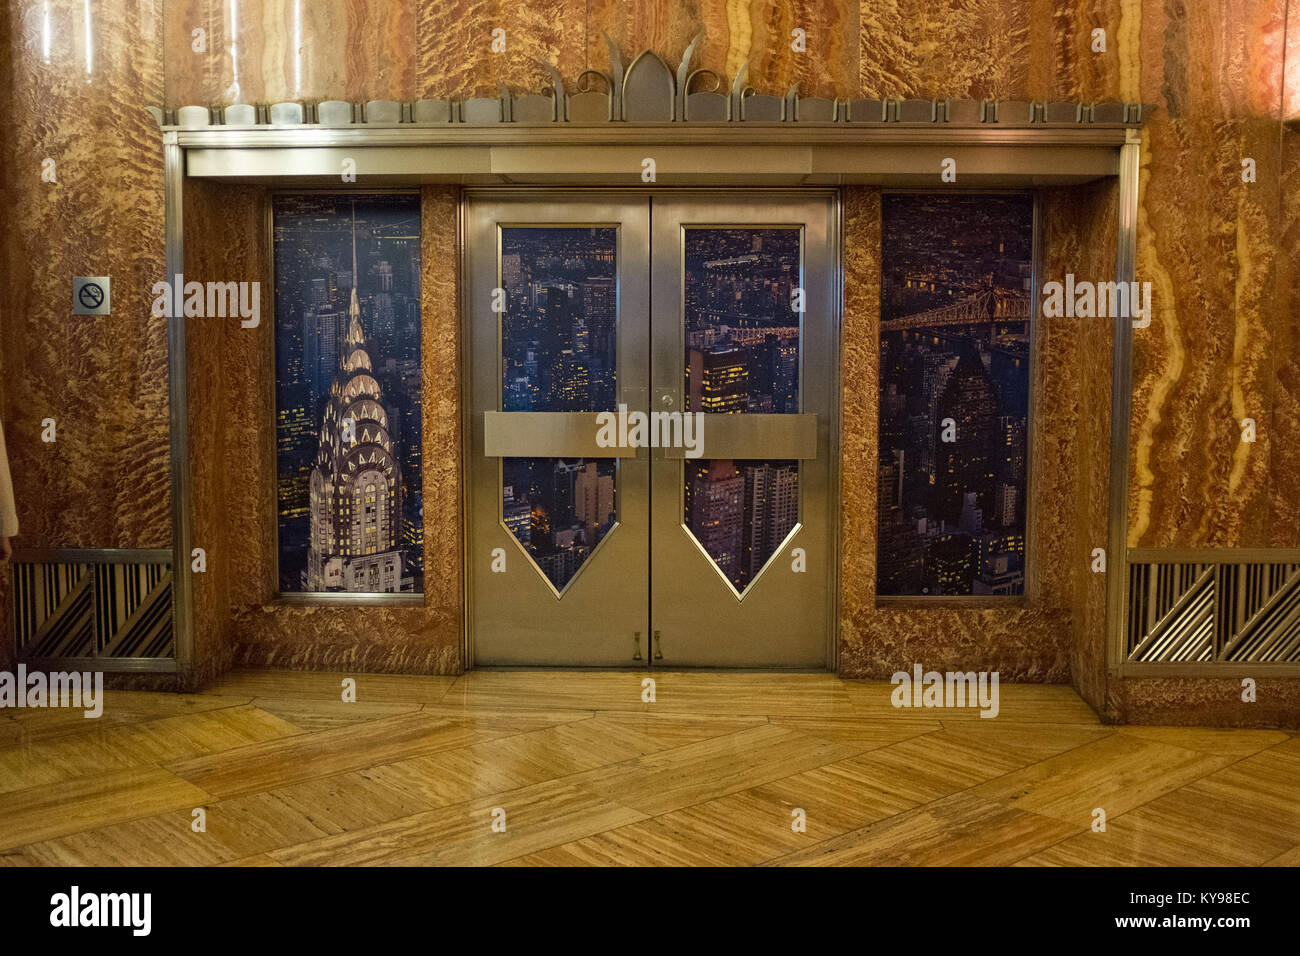 The Chrysler Building, Midtown Manhattan, New York City, USA - Stock Image